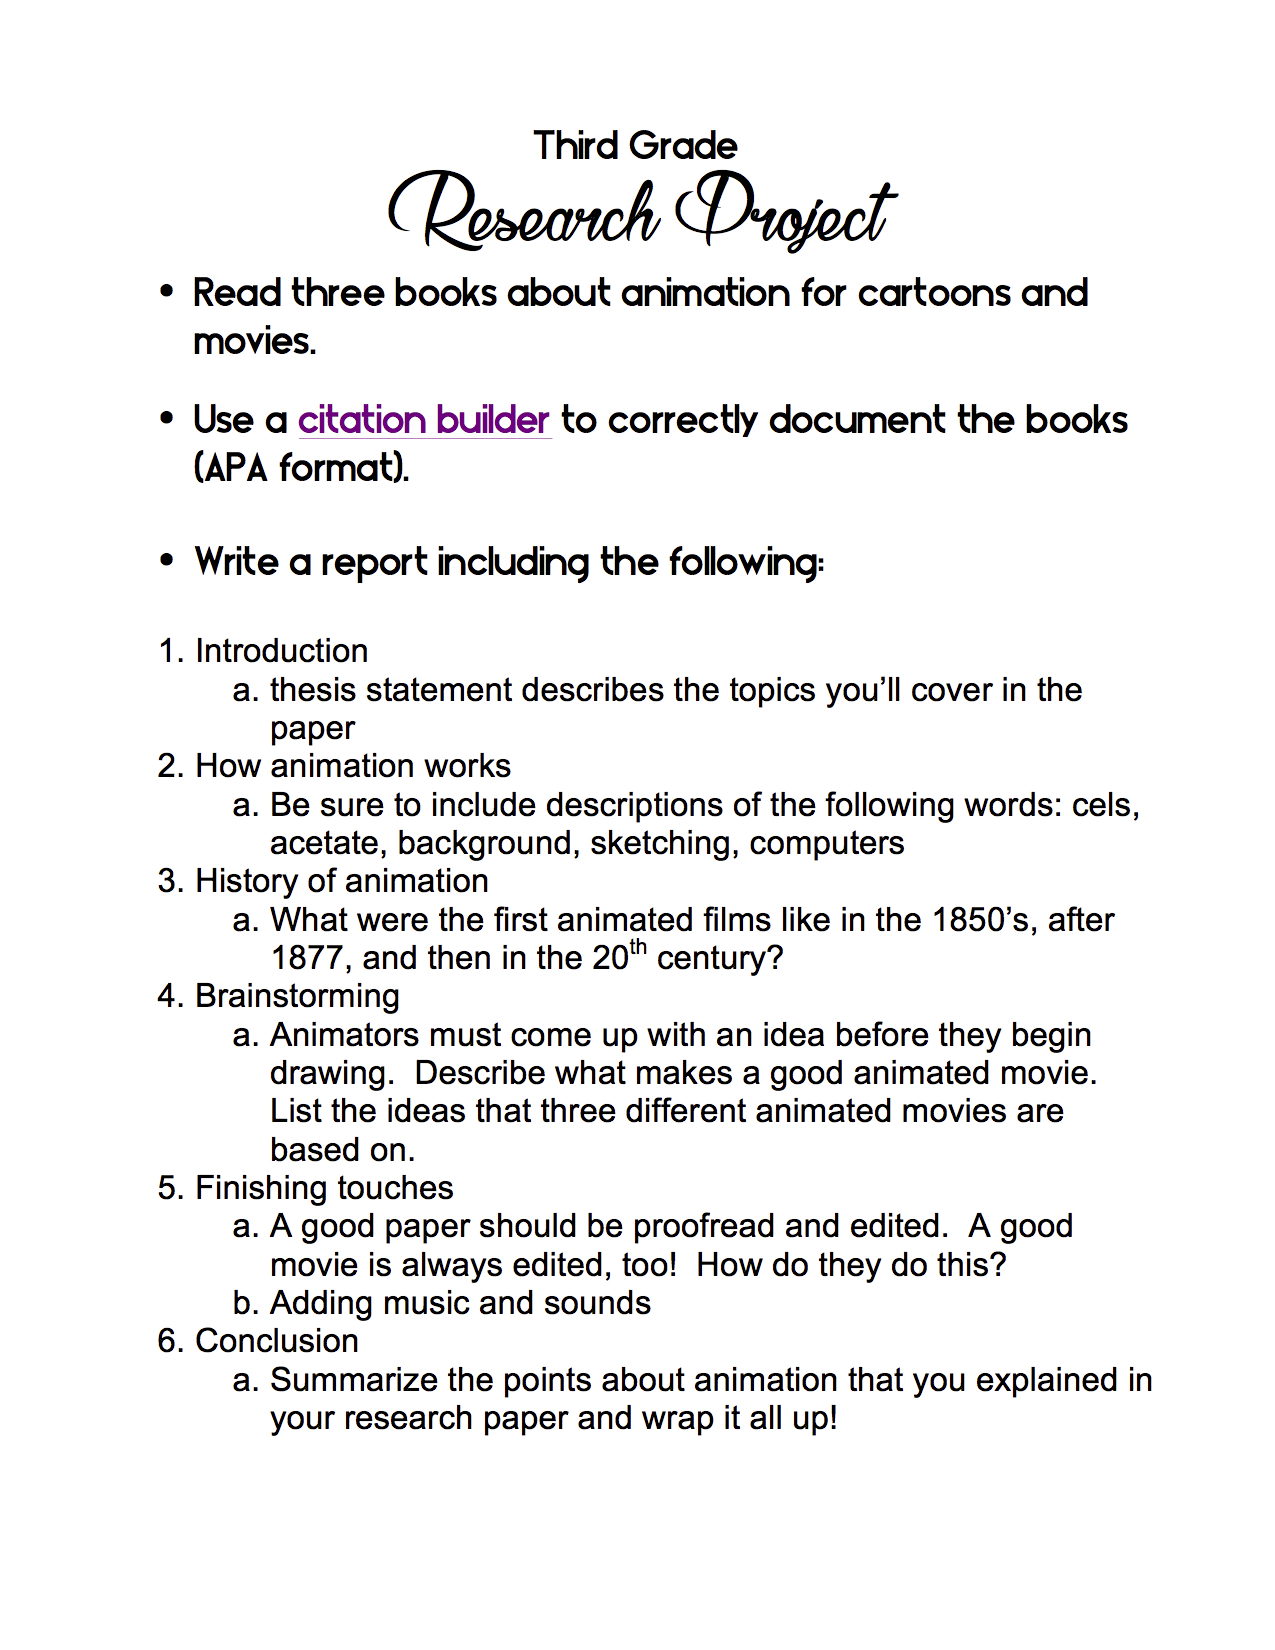 006 3rd Grade Research Project Paper Cancer Topic Archaicawful Ideas Breast Full